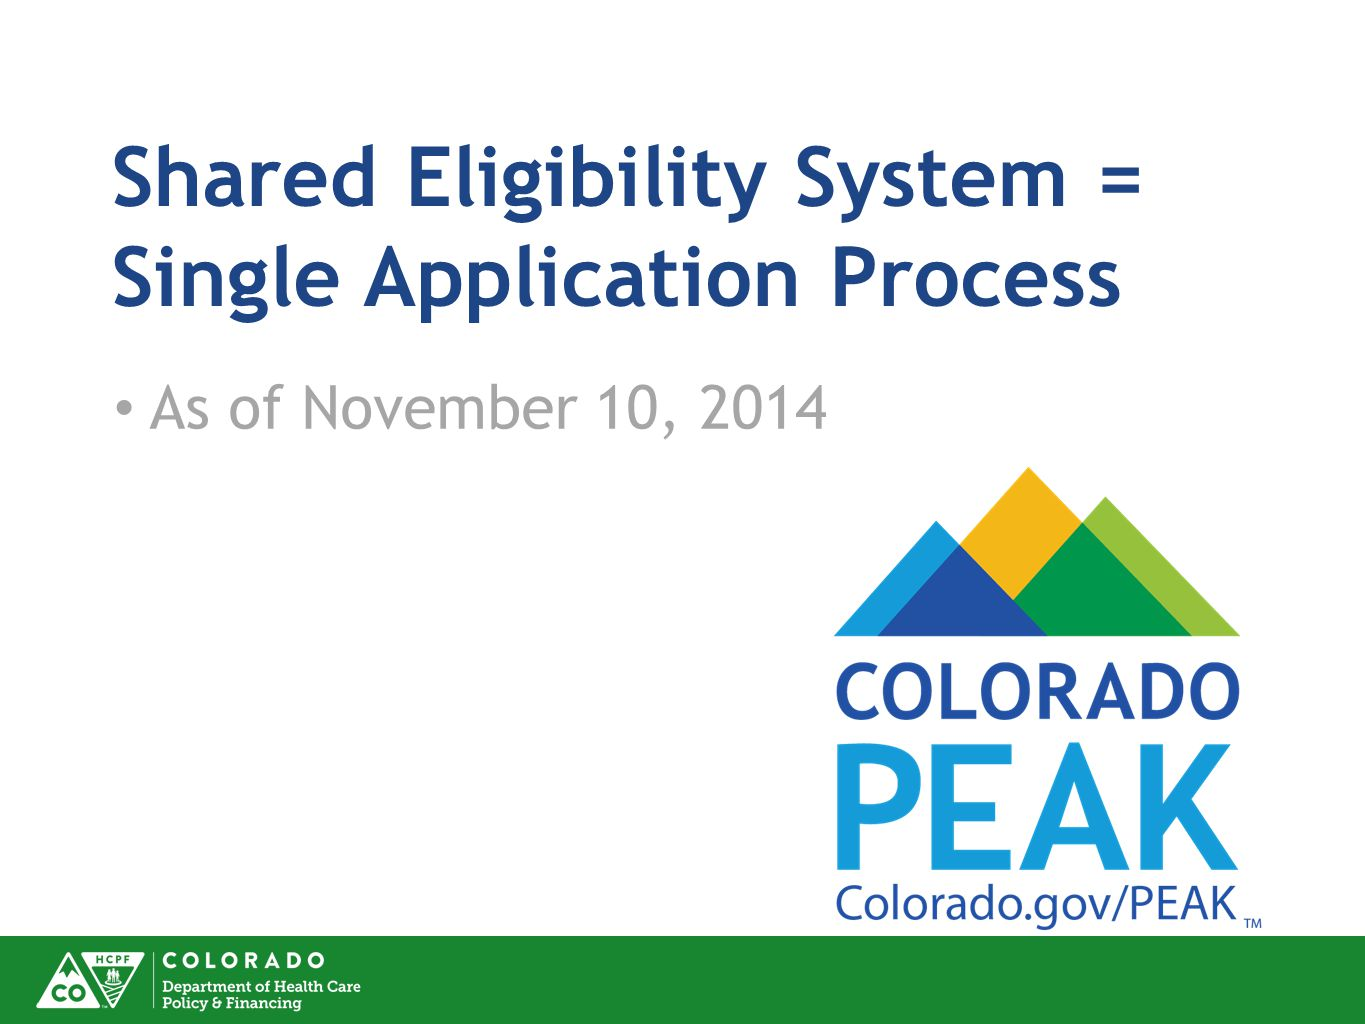 Shared Eligibility System = Single Application Process As of November 10, 2014